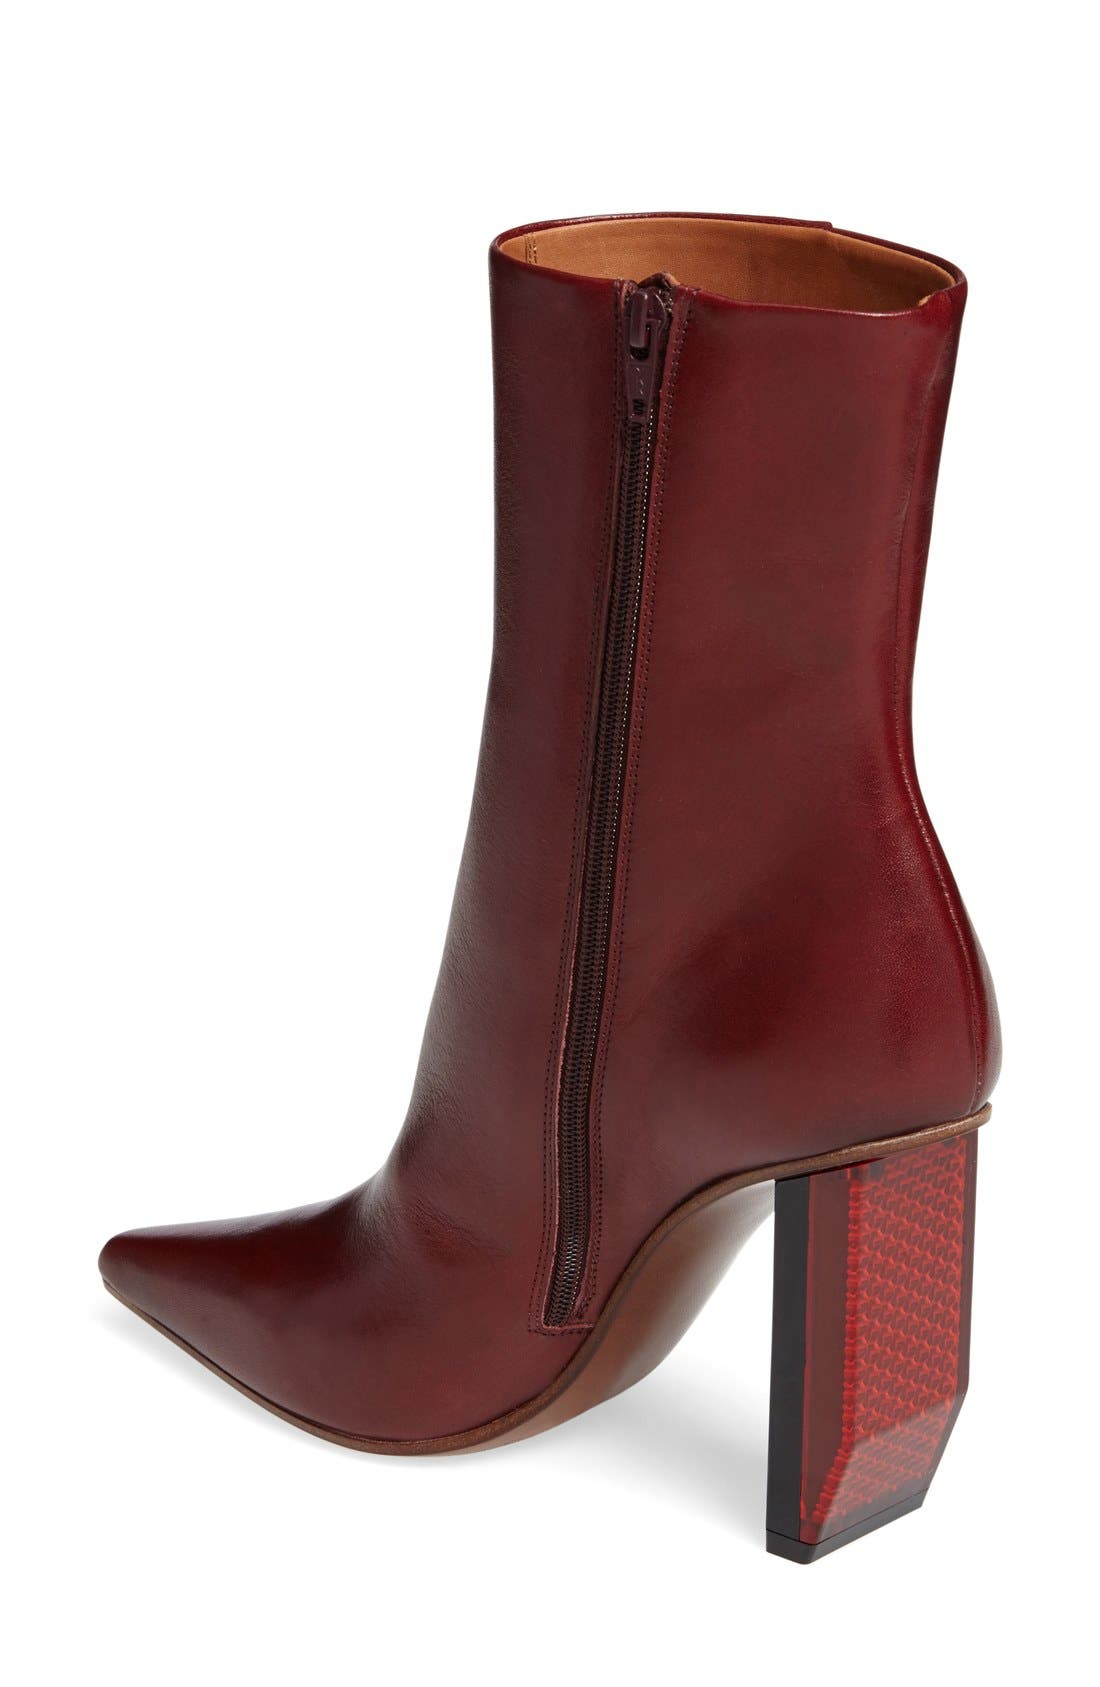 Reflector Heel Ankle Boot,                             Alternate thumbnail 2, color,                             Burgundy/ Red Heel